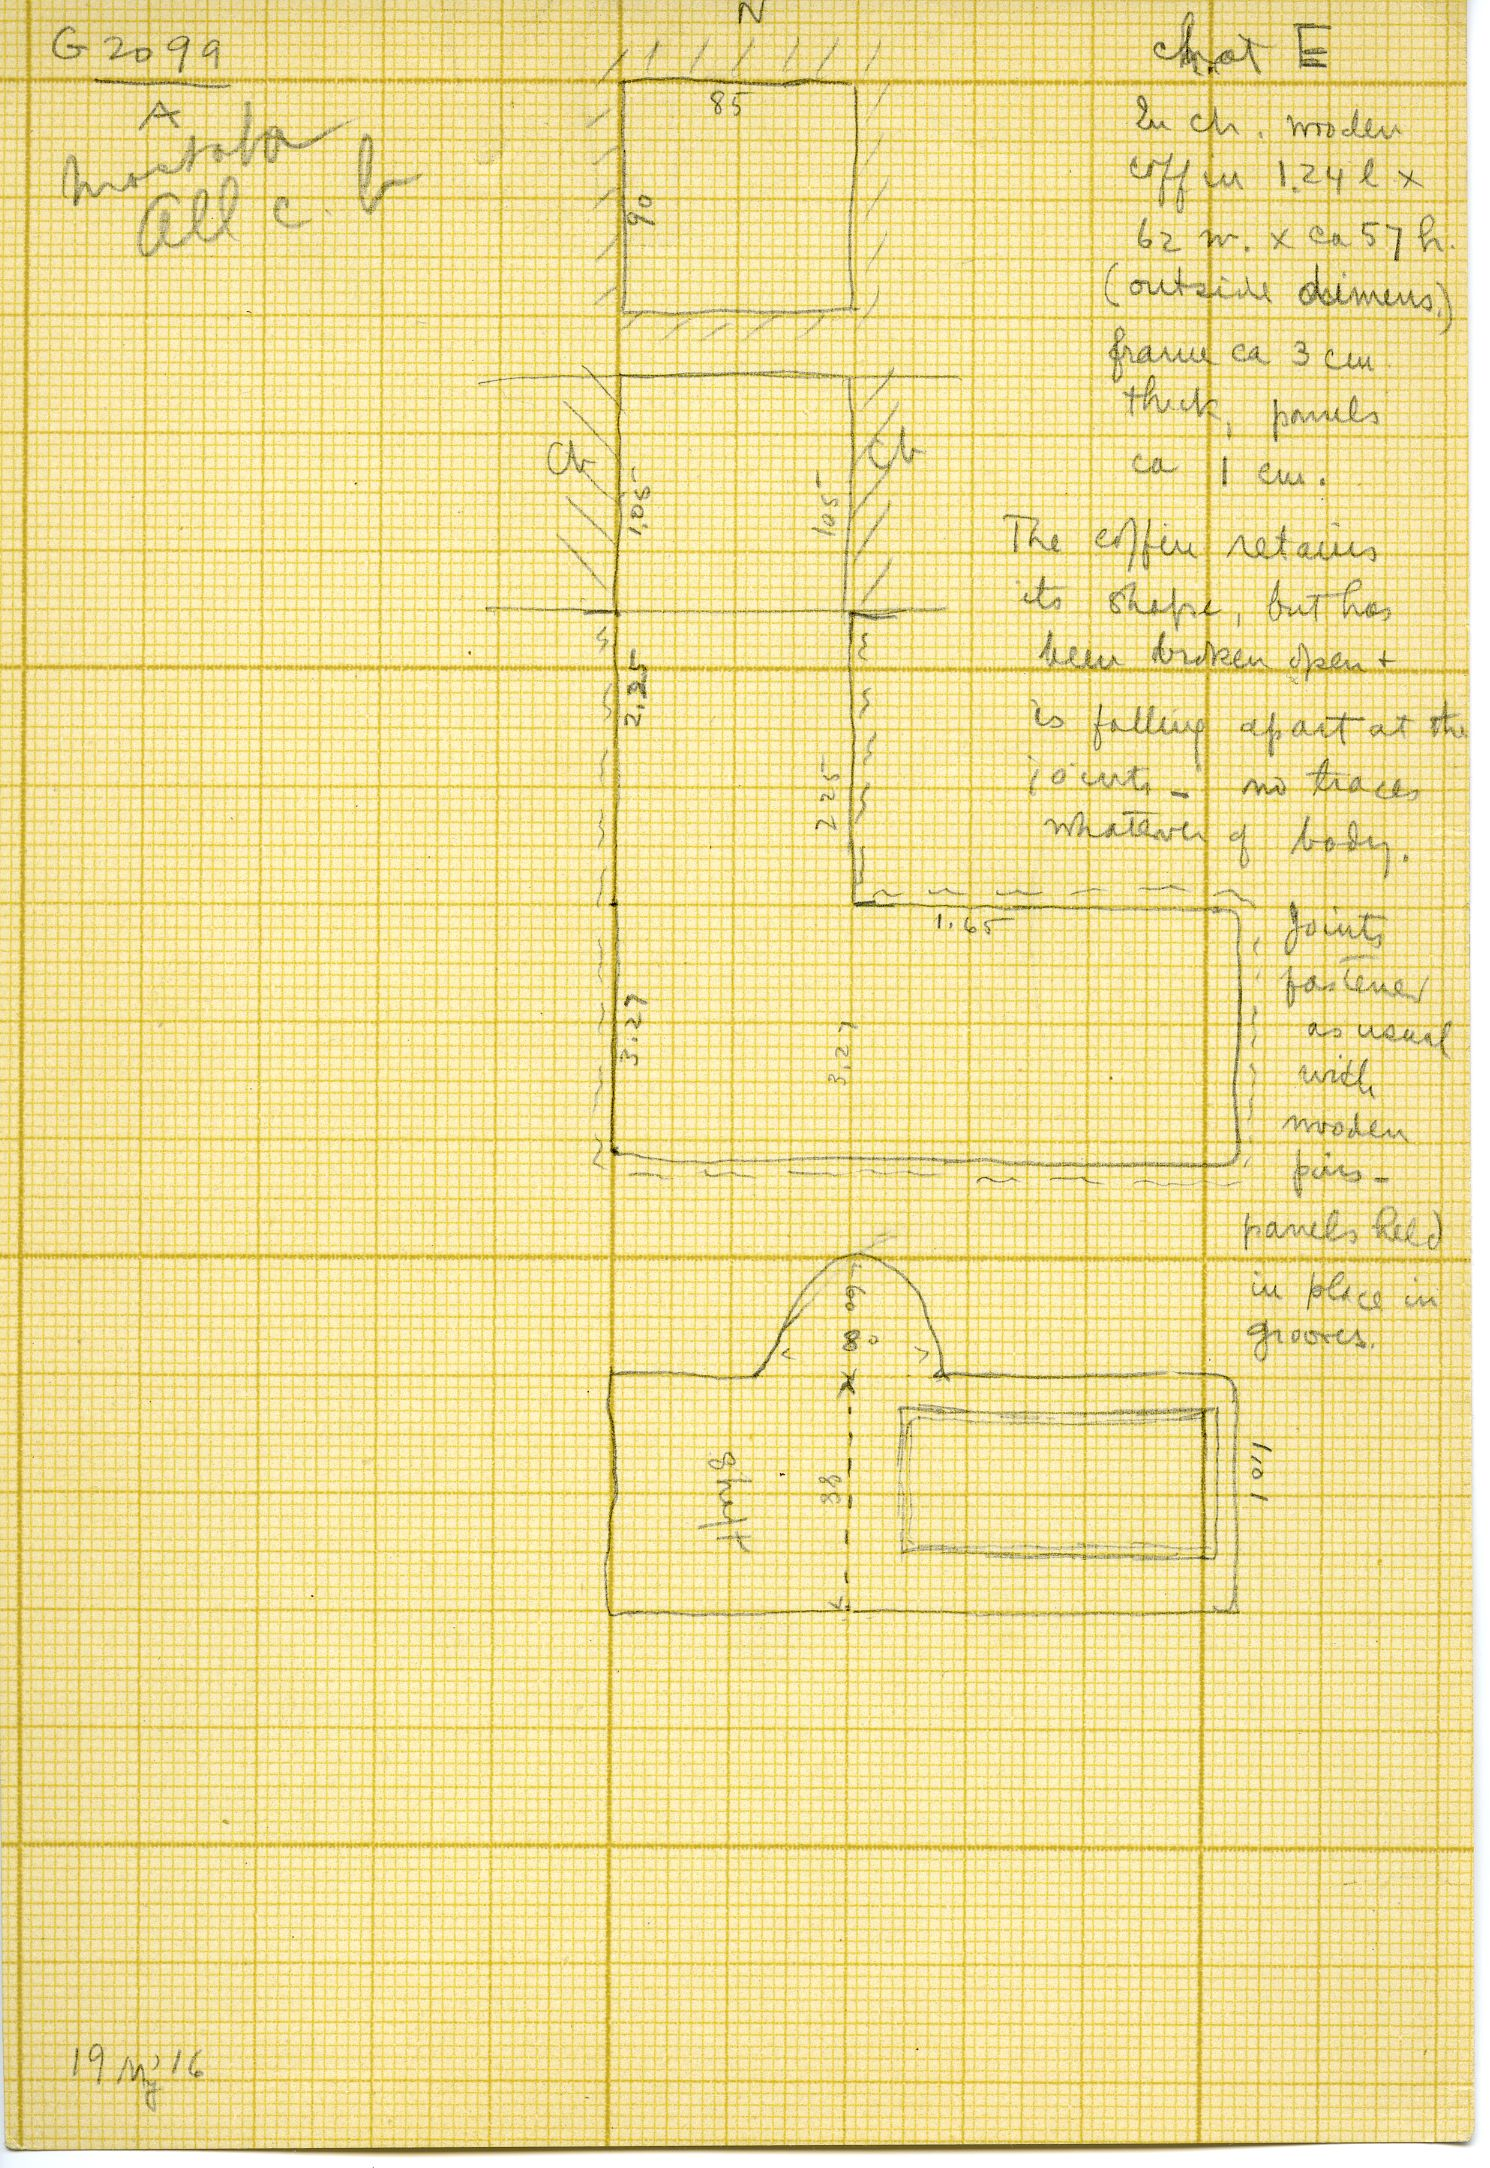 Maps and plans: G 3099, Shaft A